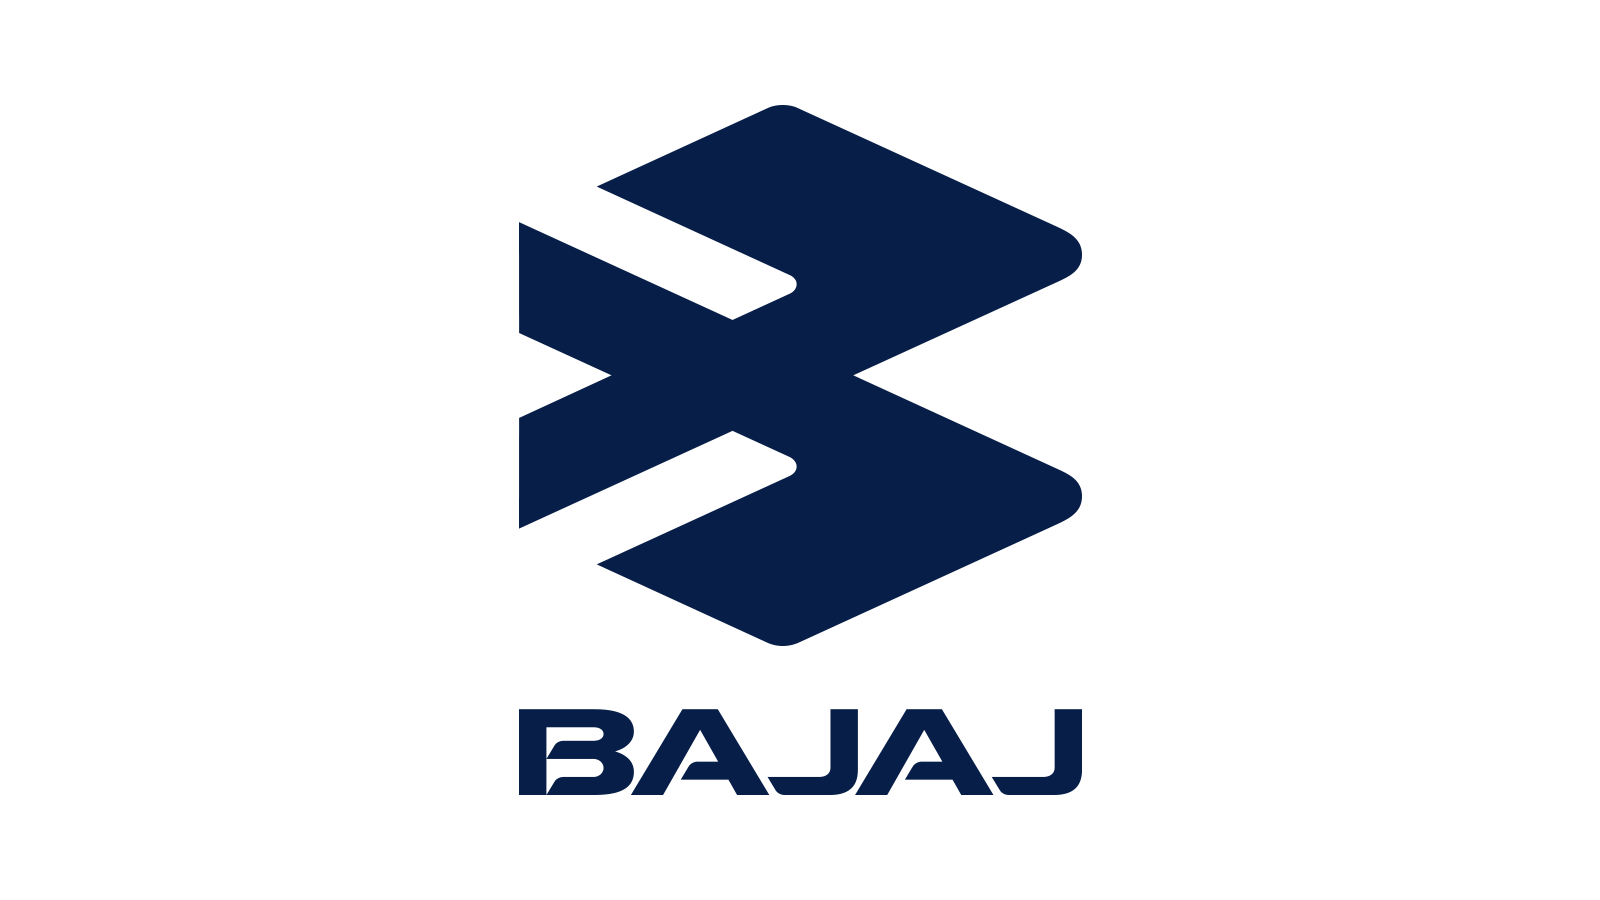 bajaj auto ltd See bajaj auto ltd salaries collected directly from employees and jobs on indeed.